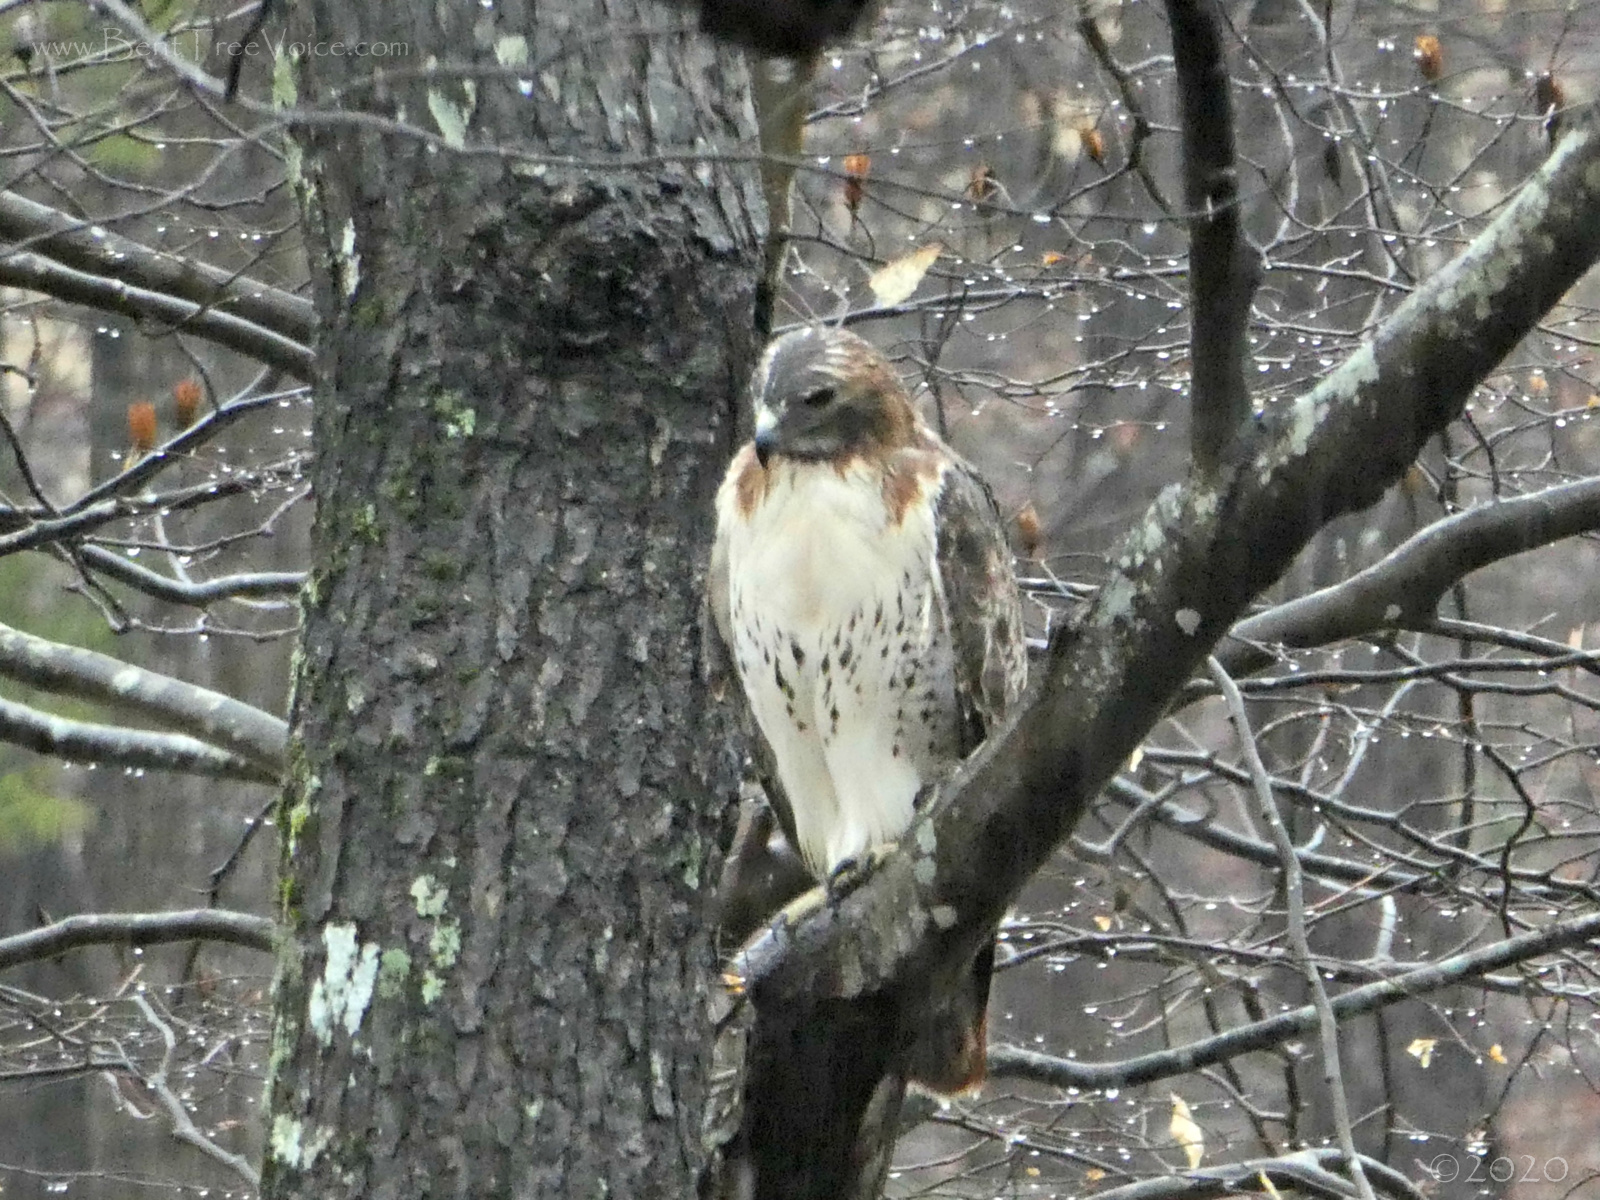 February 18, 2020 - hawk on a rainy day in Bent Tree